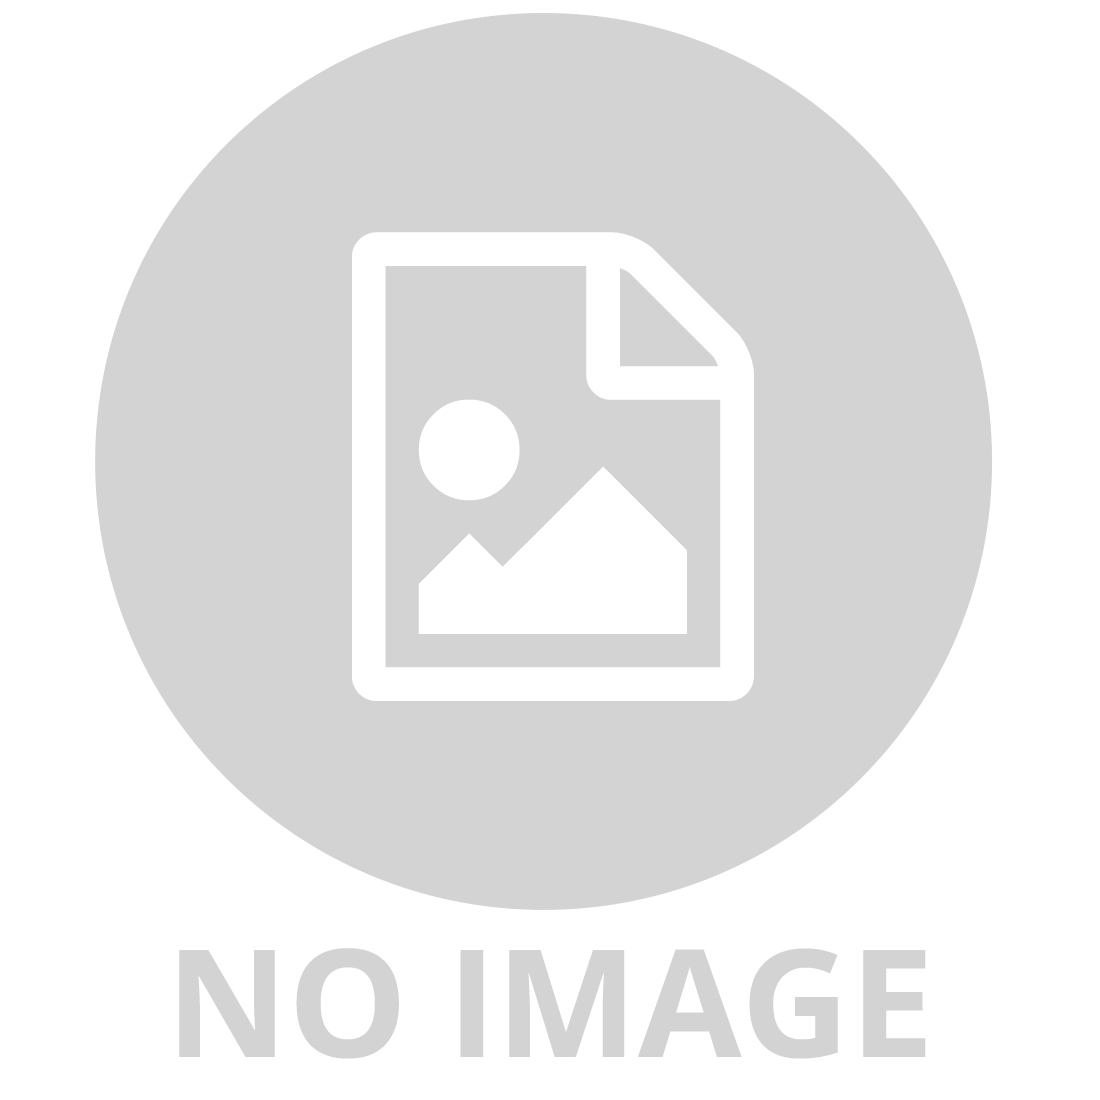 OUR GENERATION SEASIDE SLEEPOVER OUTFIT